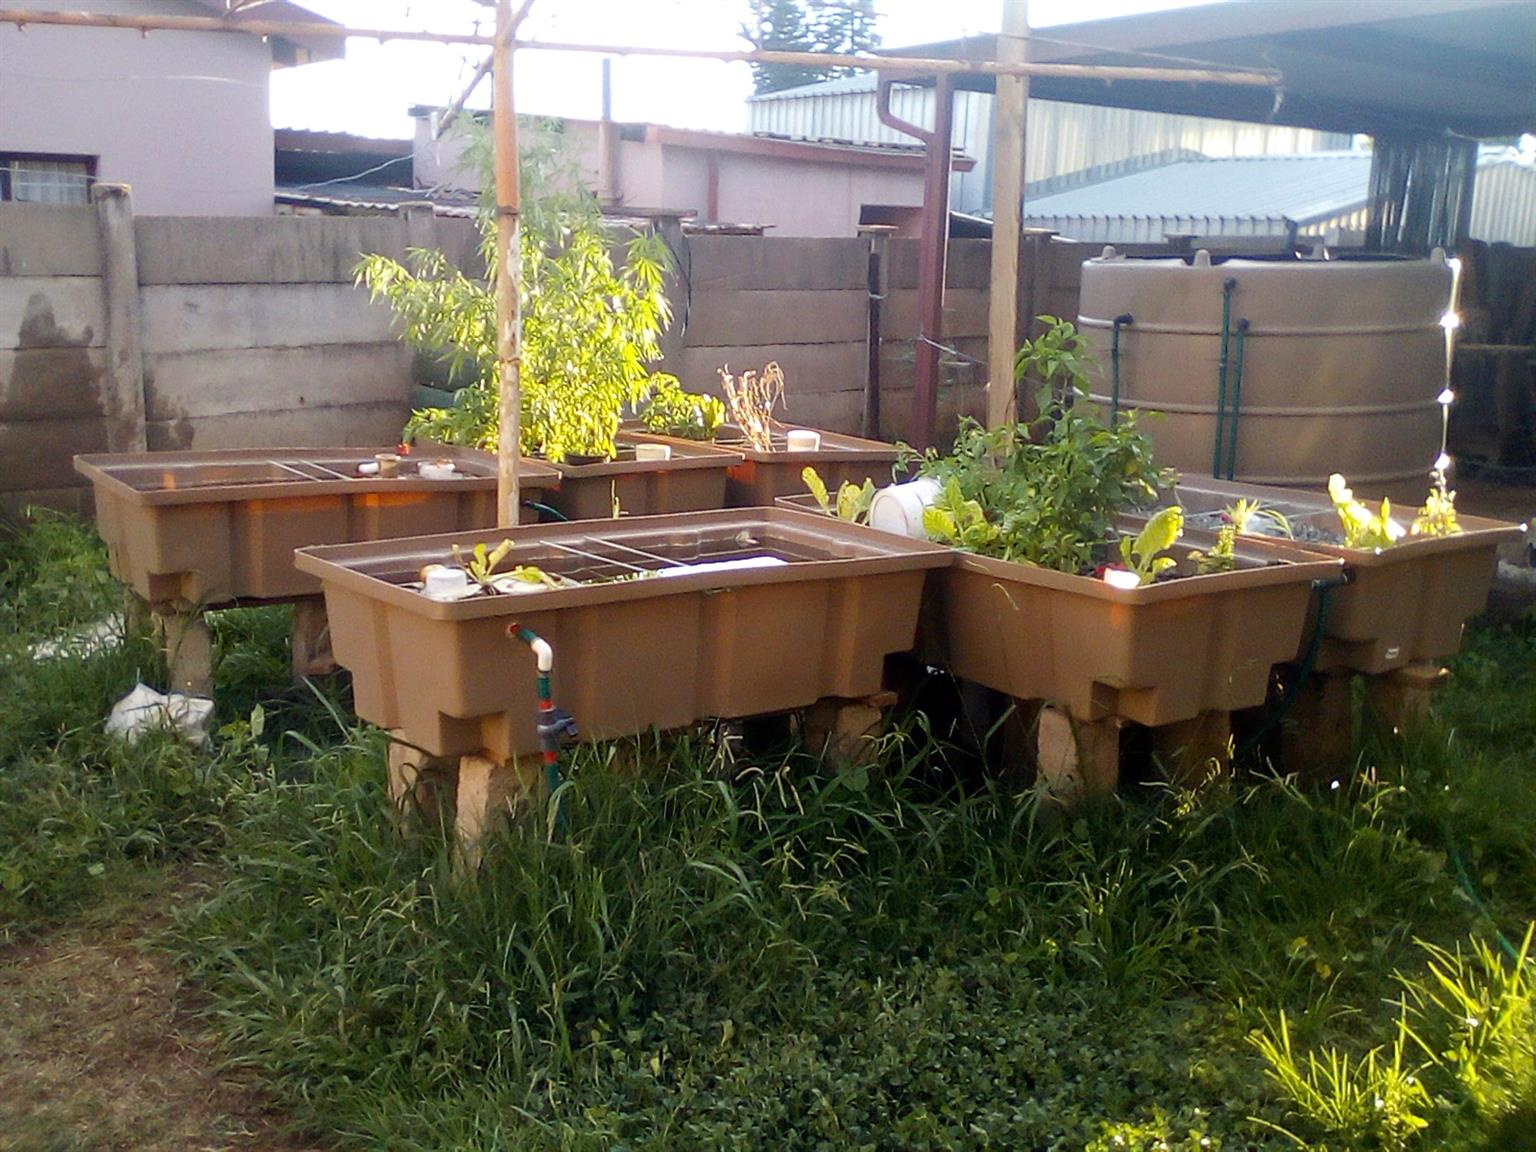 Fully functional Complete Aquaponics System